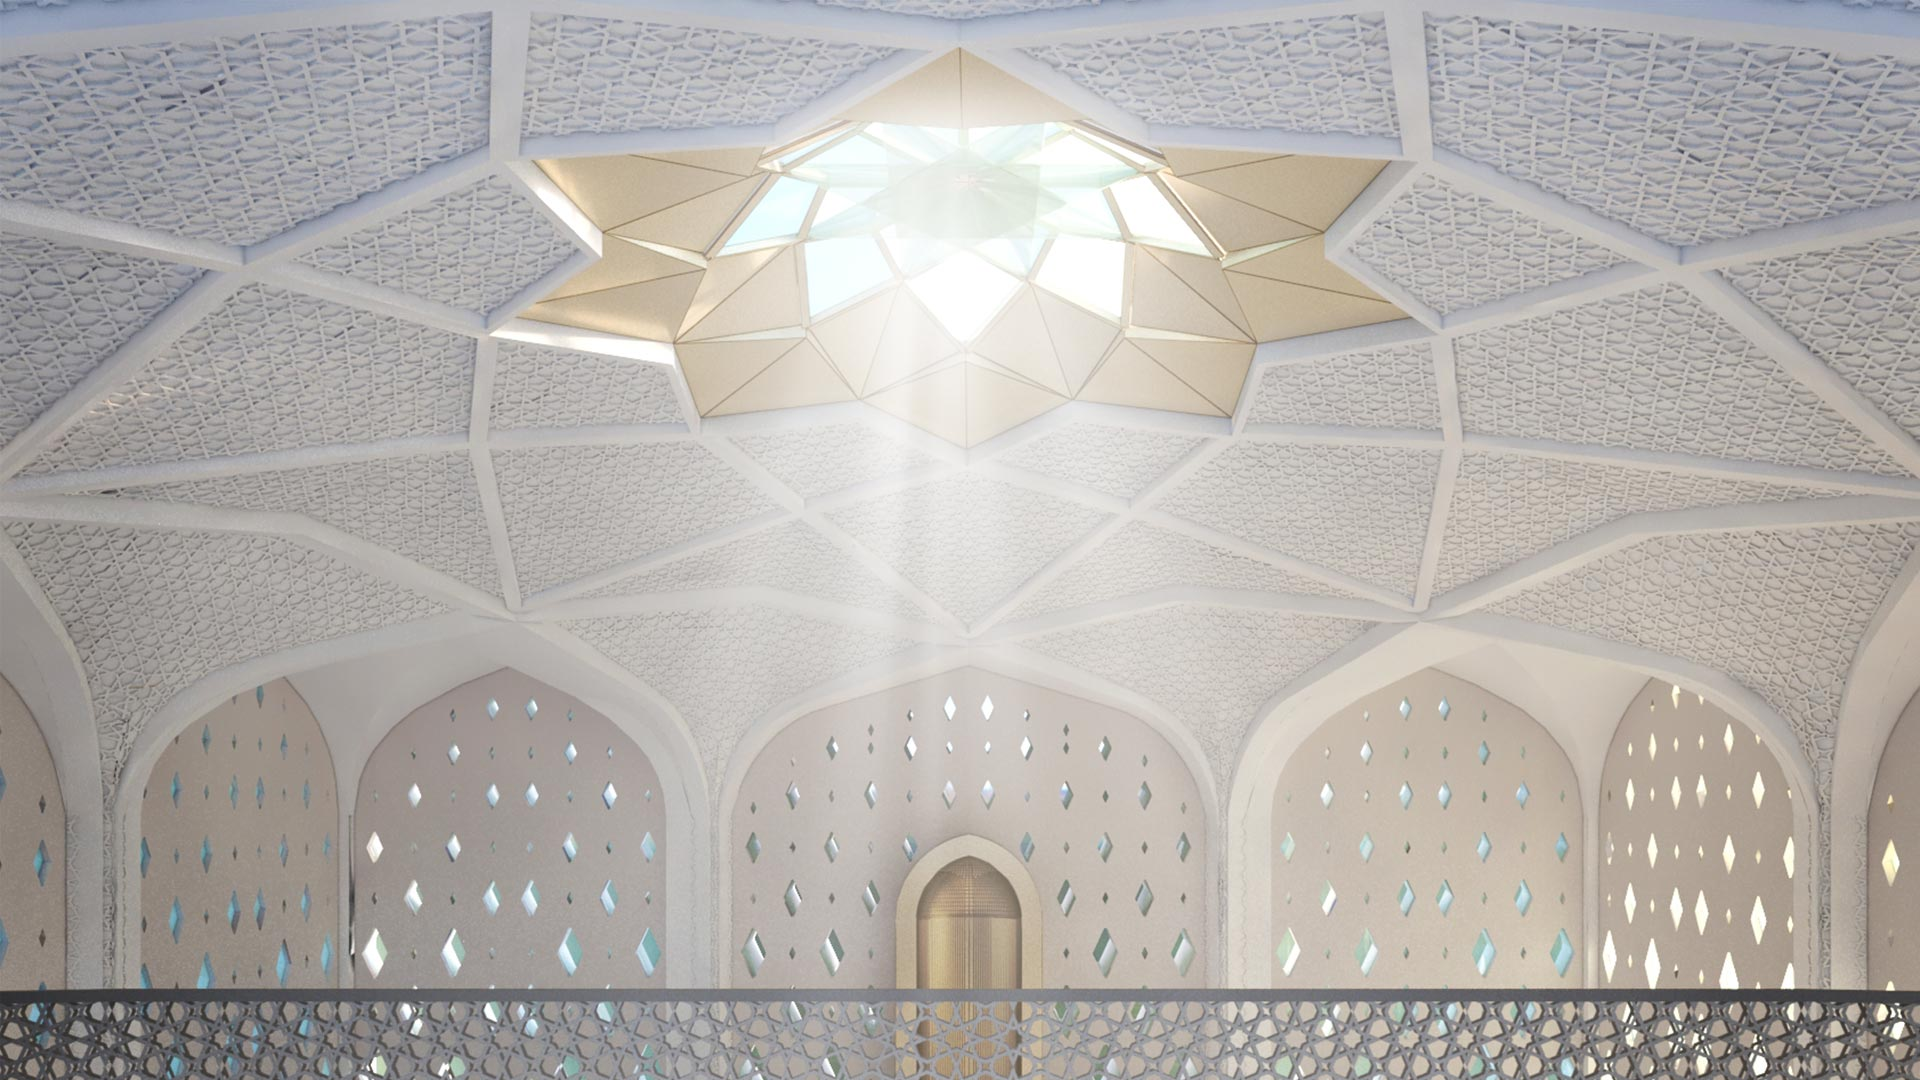 Interior view - Inside the mosque, the structural system creates a form inspired by classic Islamic ornamentation.